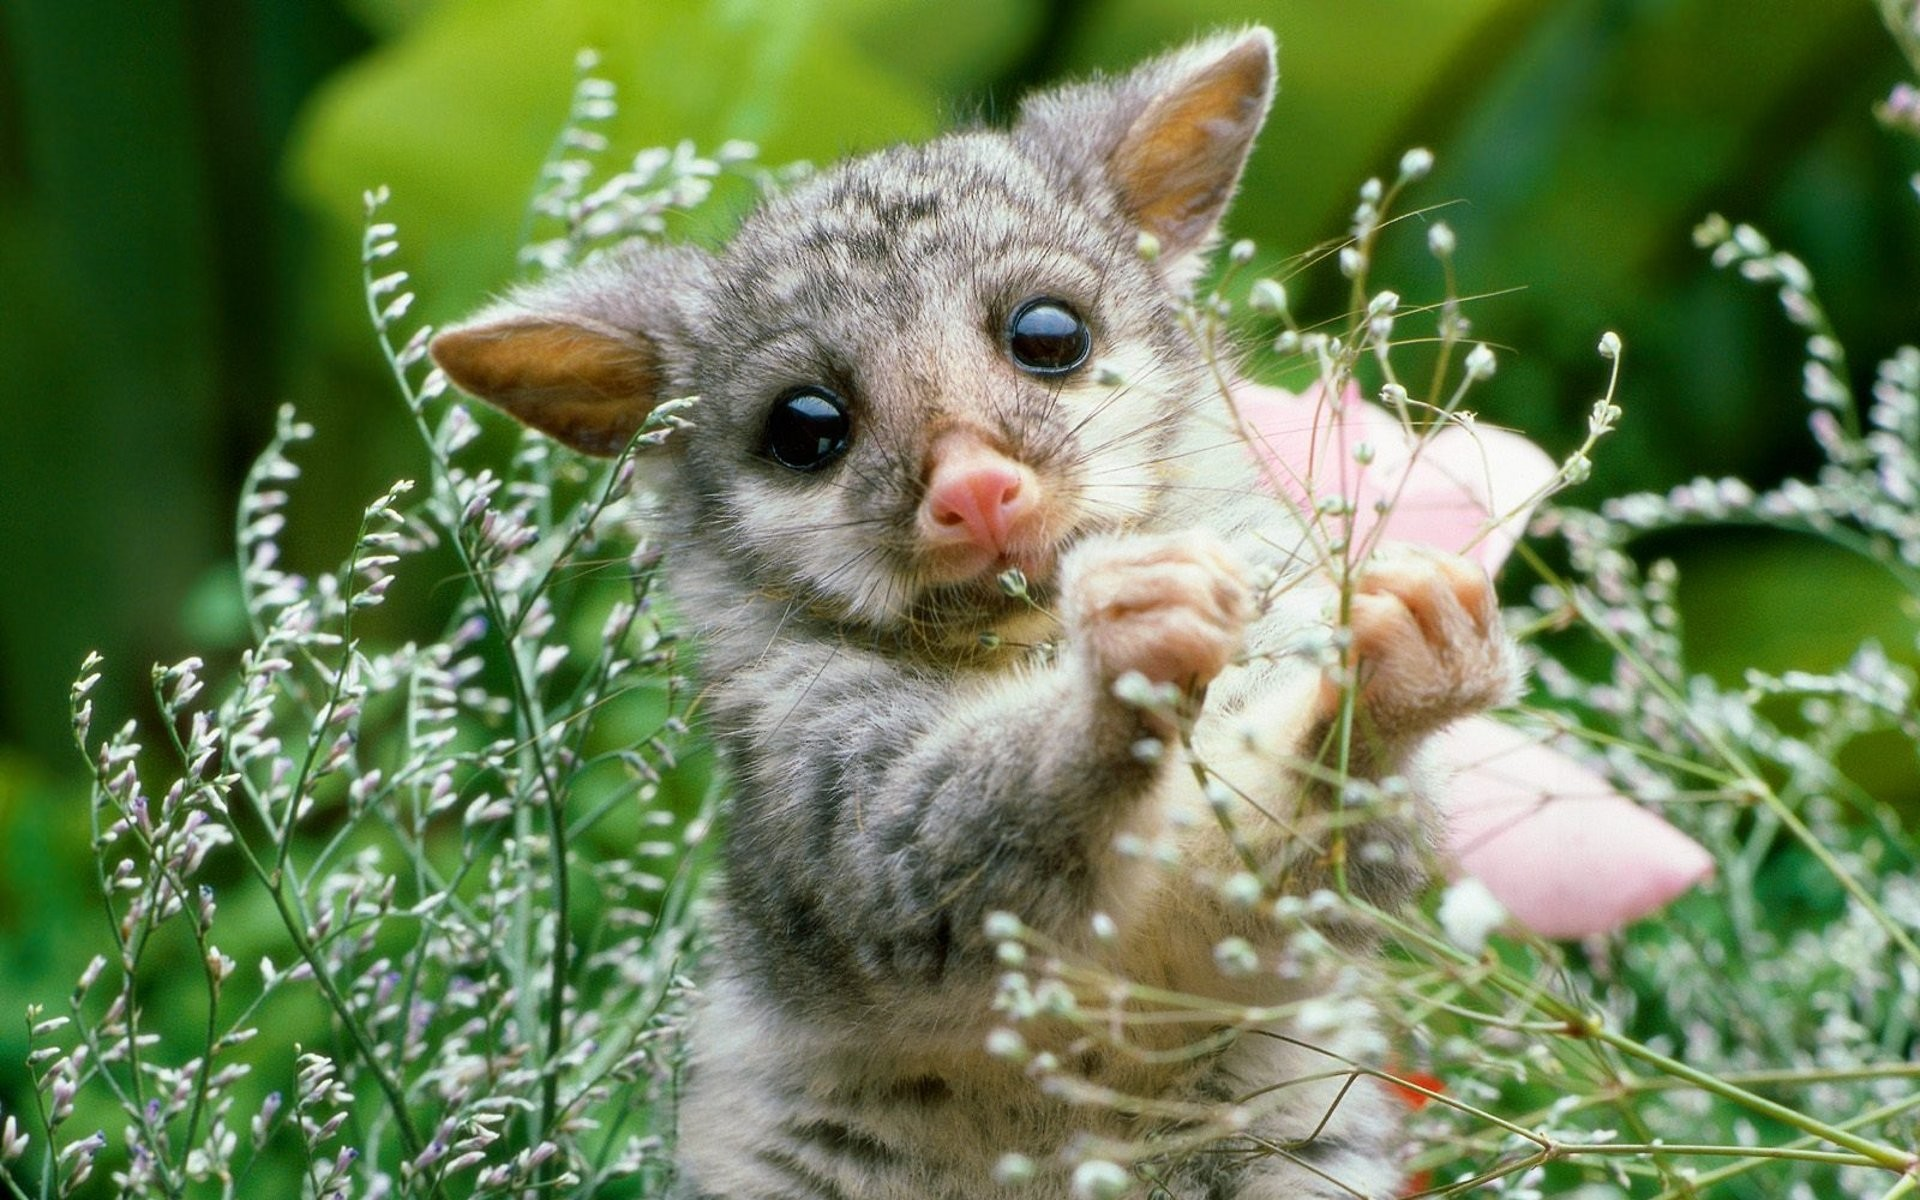 Cute Baby Animal Wallpaper 1